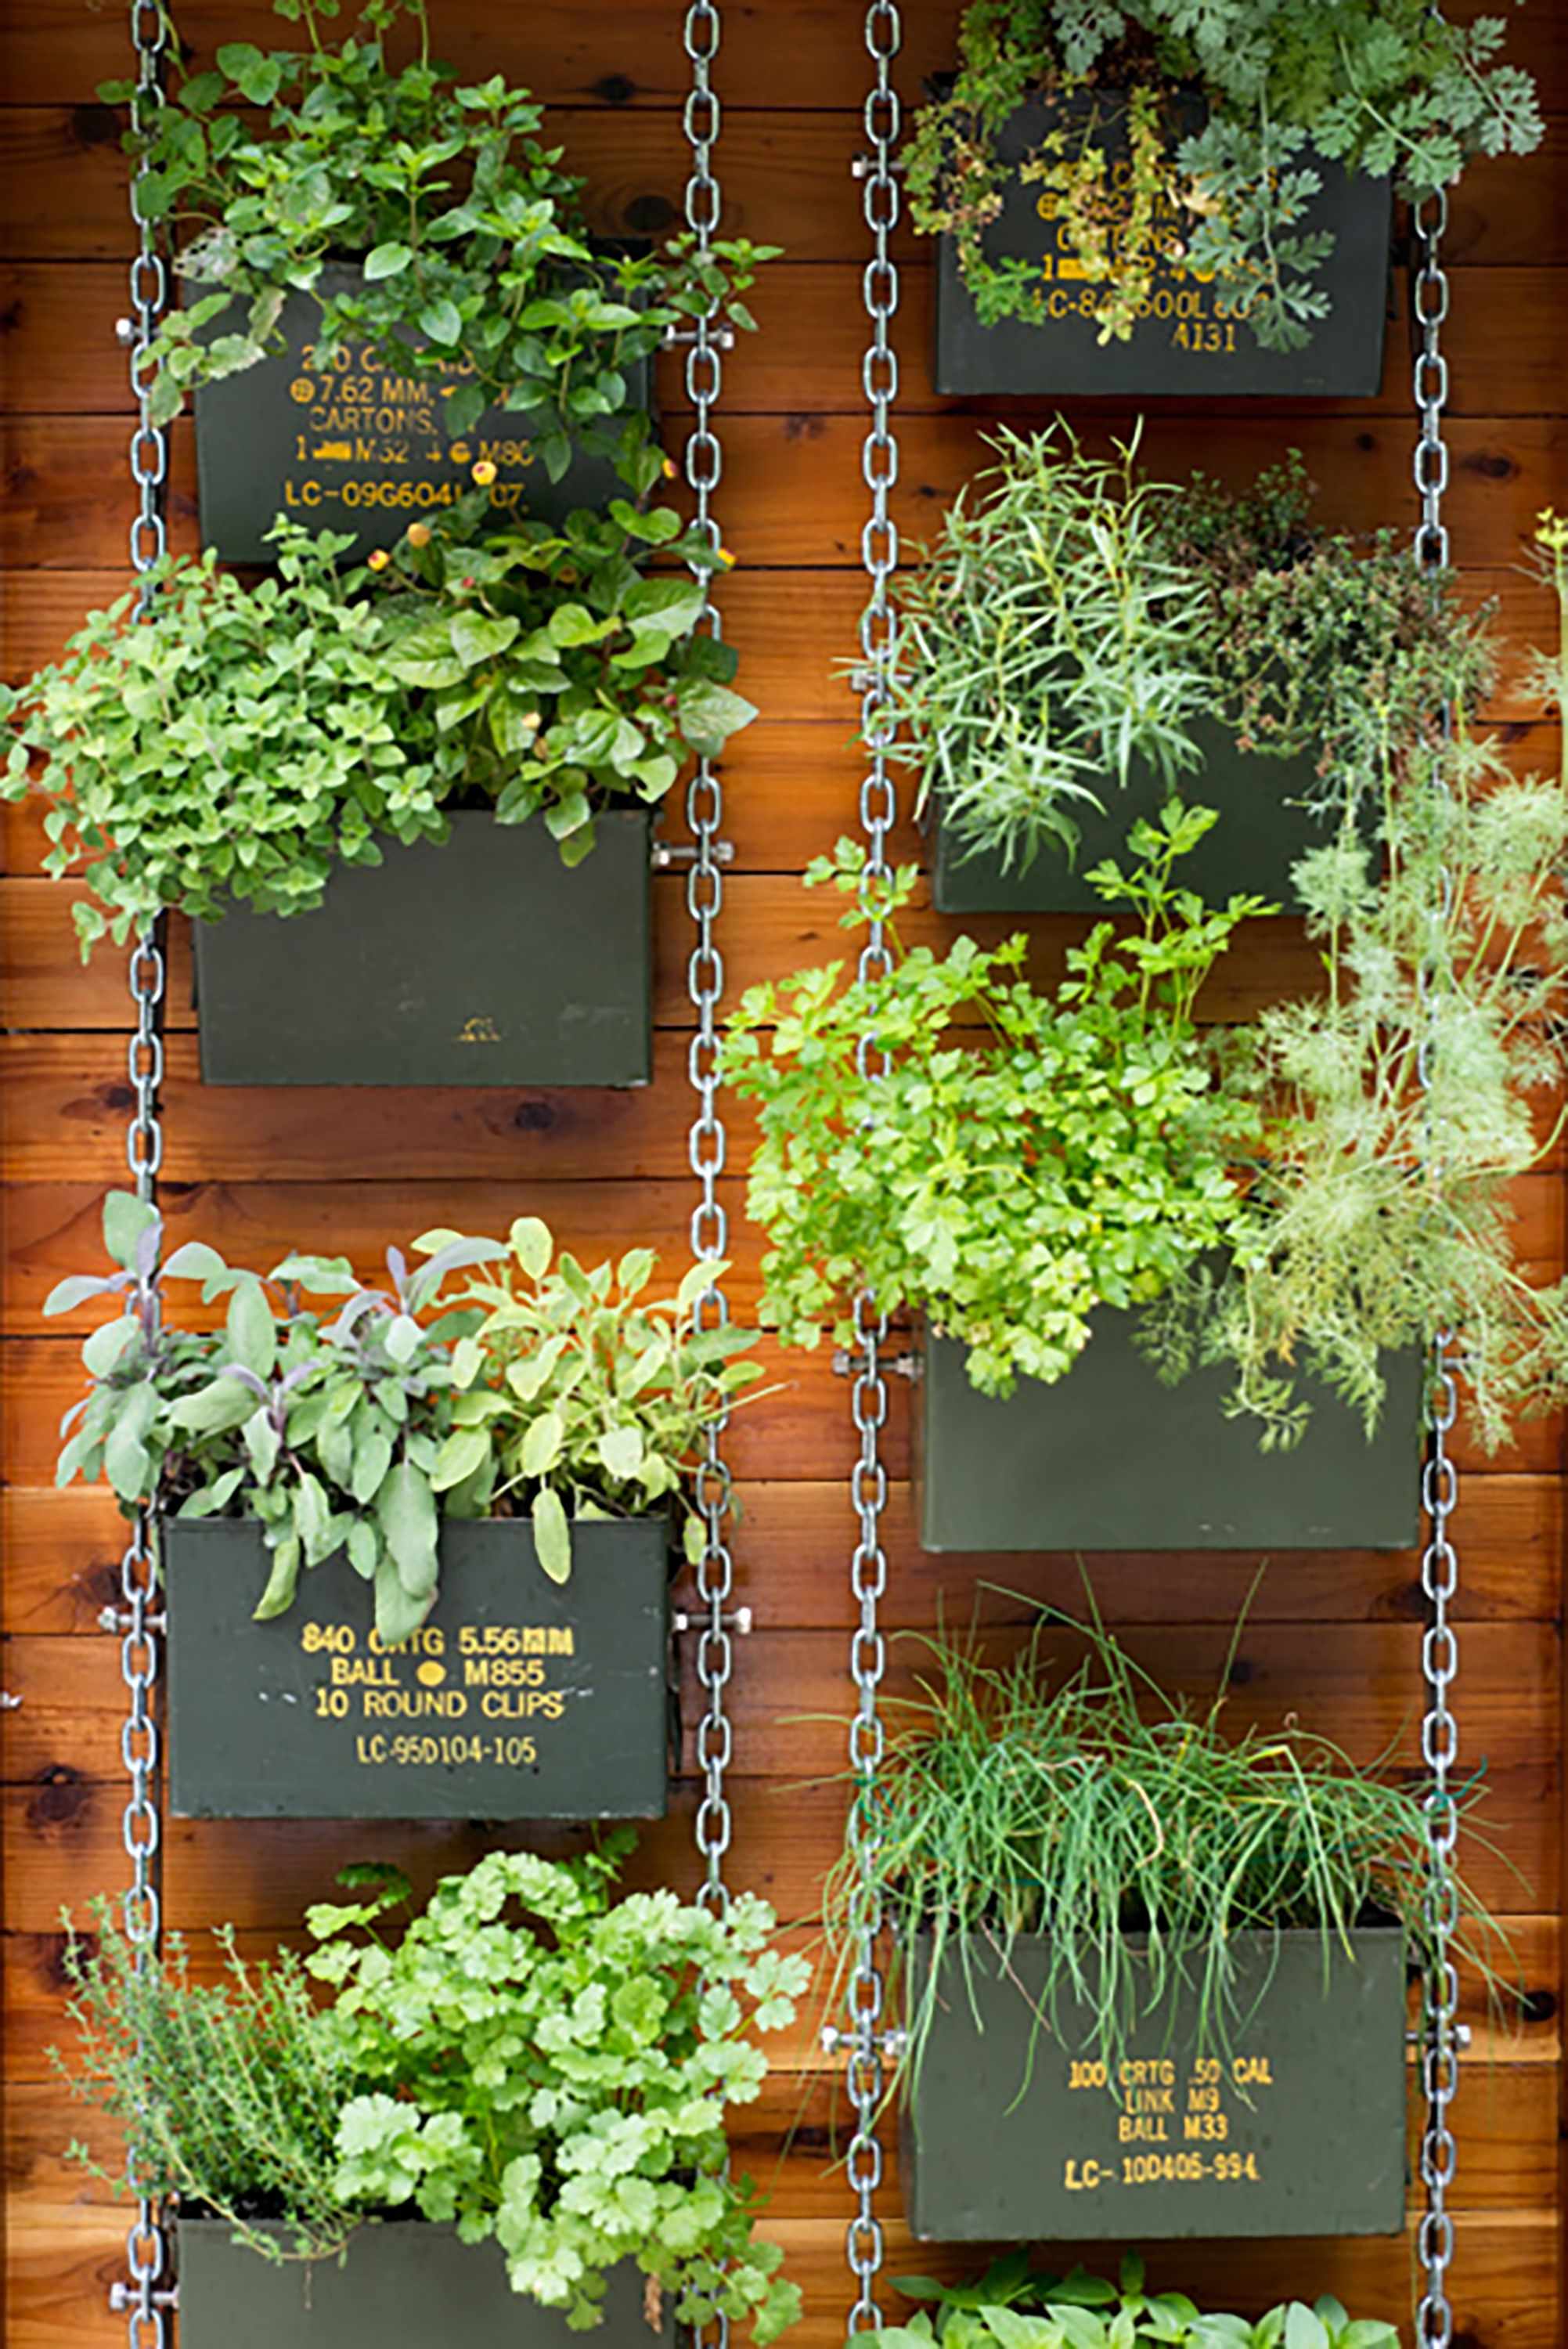 Vertical Garden Design Ideas 30+ Creative Ways to Plant a Vertical Garden - How To Make a Vertical Garden